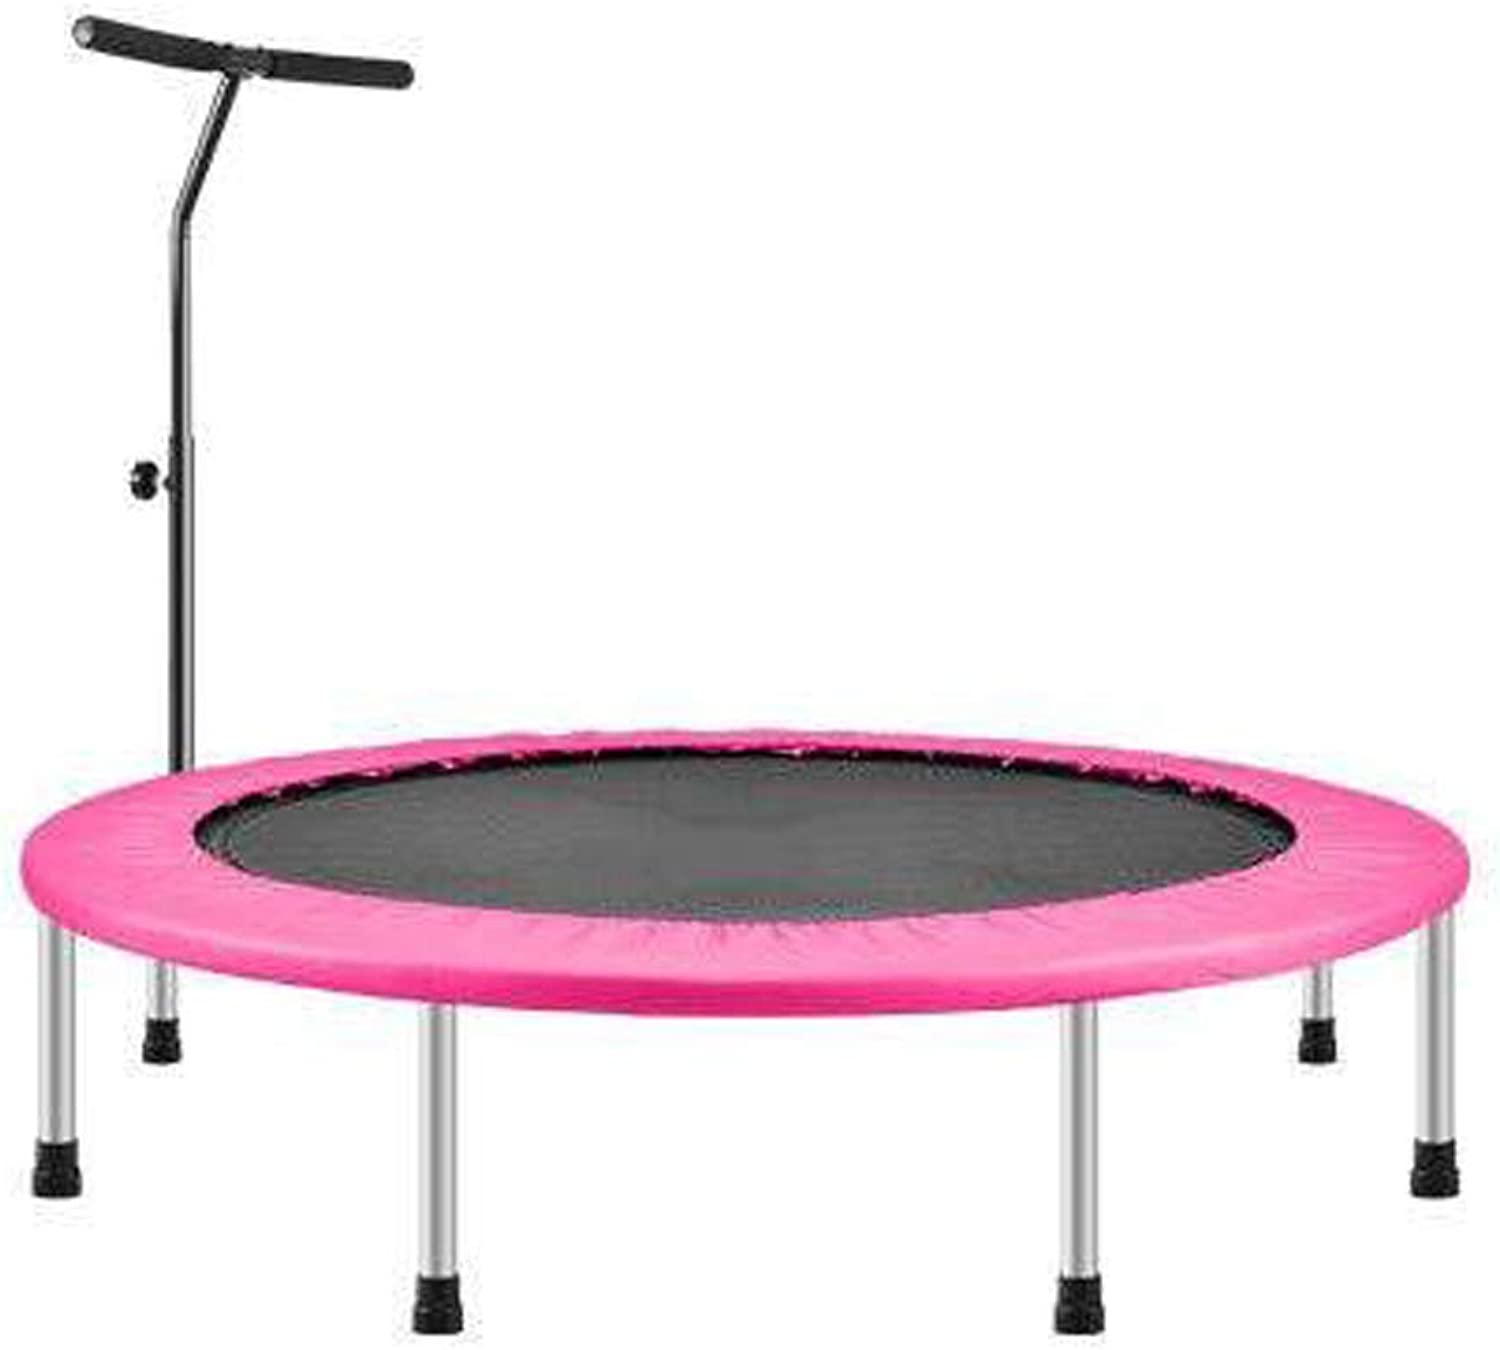 Mini Trampoline Adjustable armrests Portable Trampoline Elastic Fitness mats Stable and Durable Quiet Pink Maximum Load 150kg